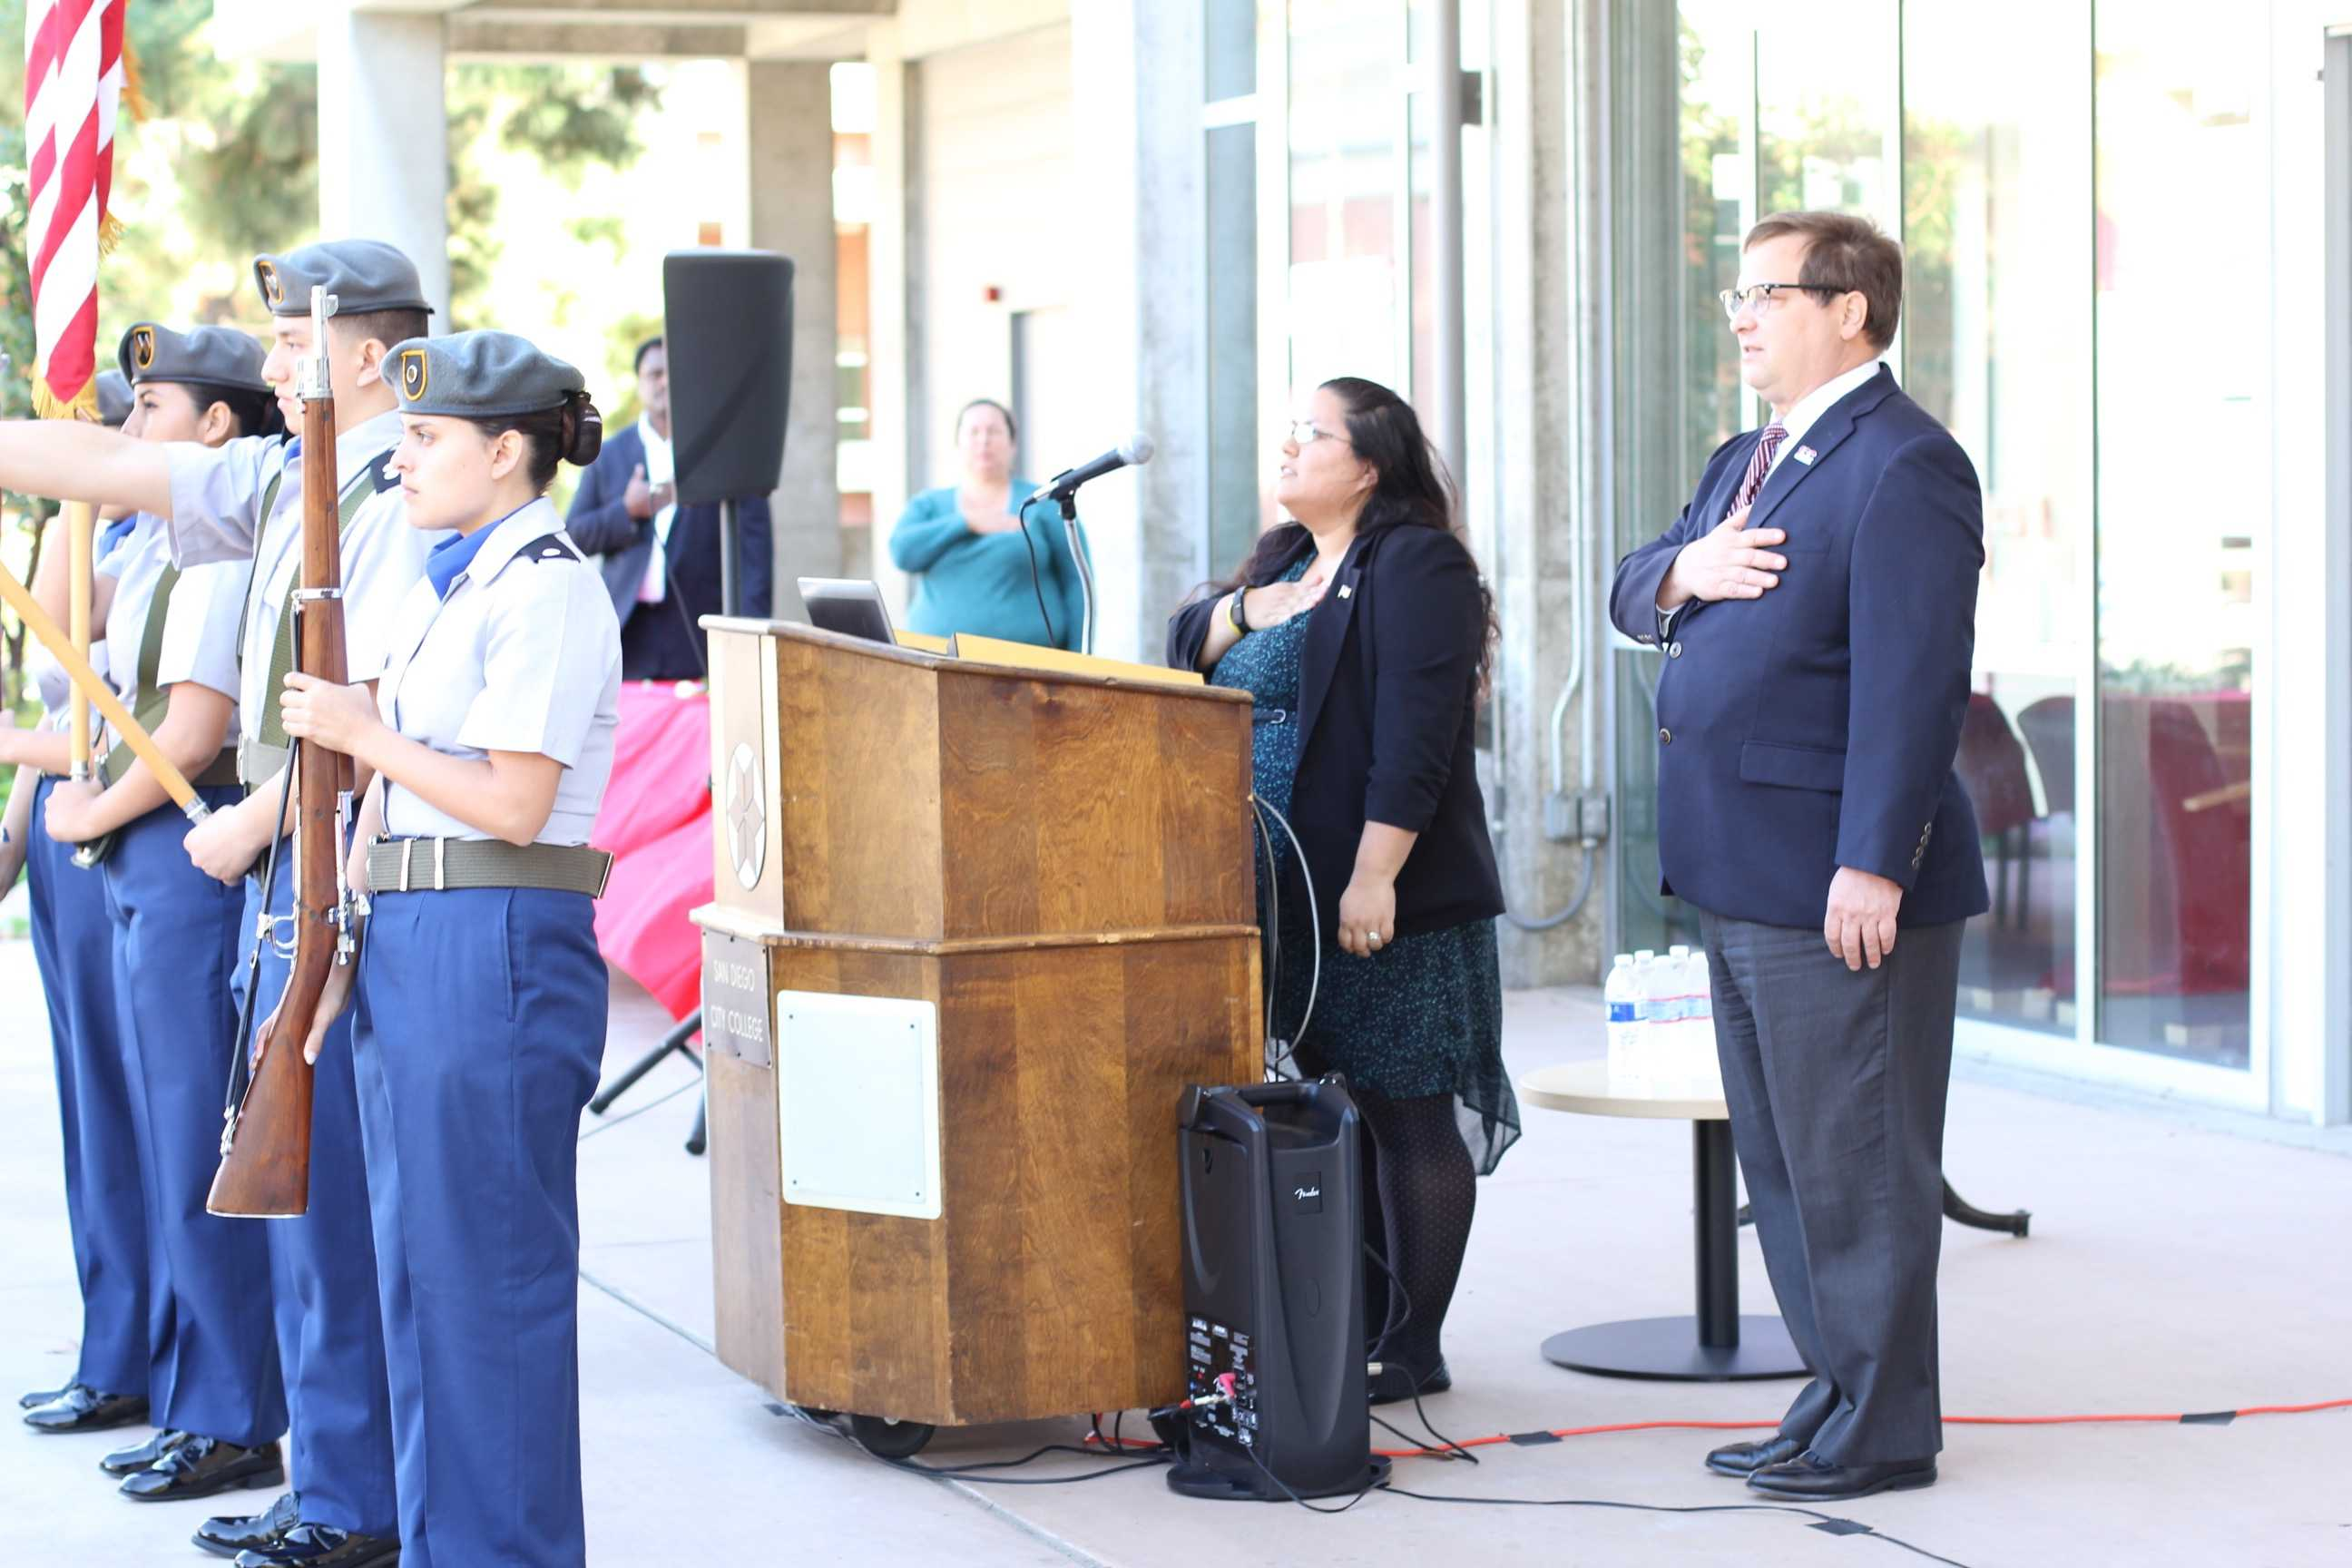 City College honors armed service members at Veterans Day event